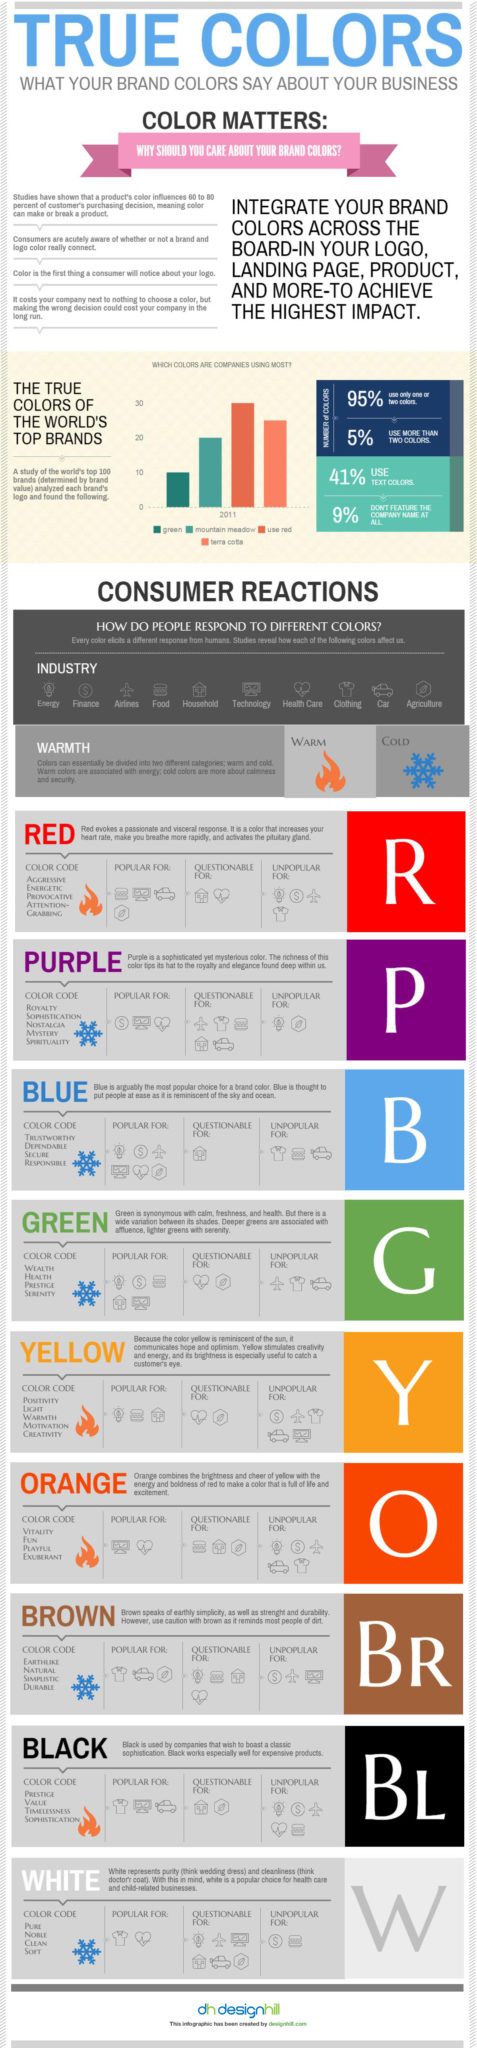 true-colors-Infographic